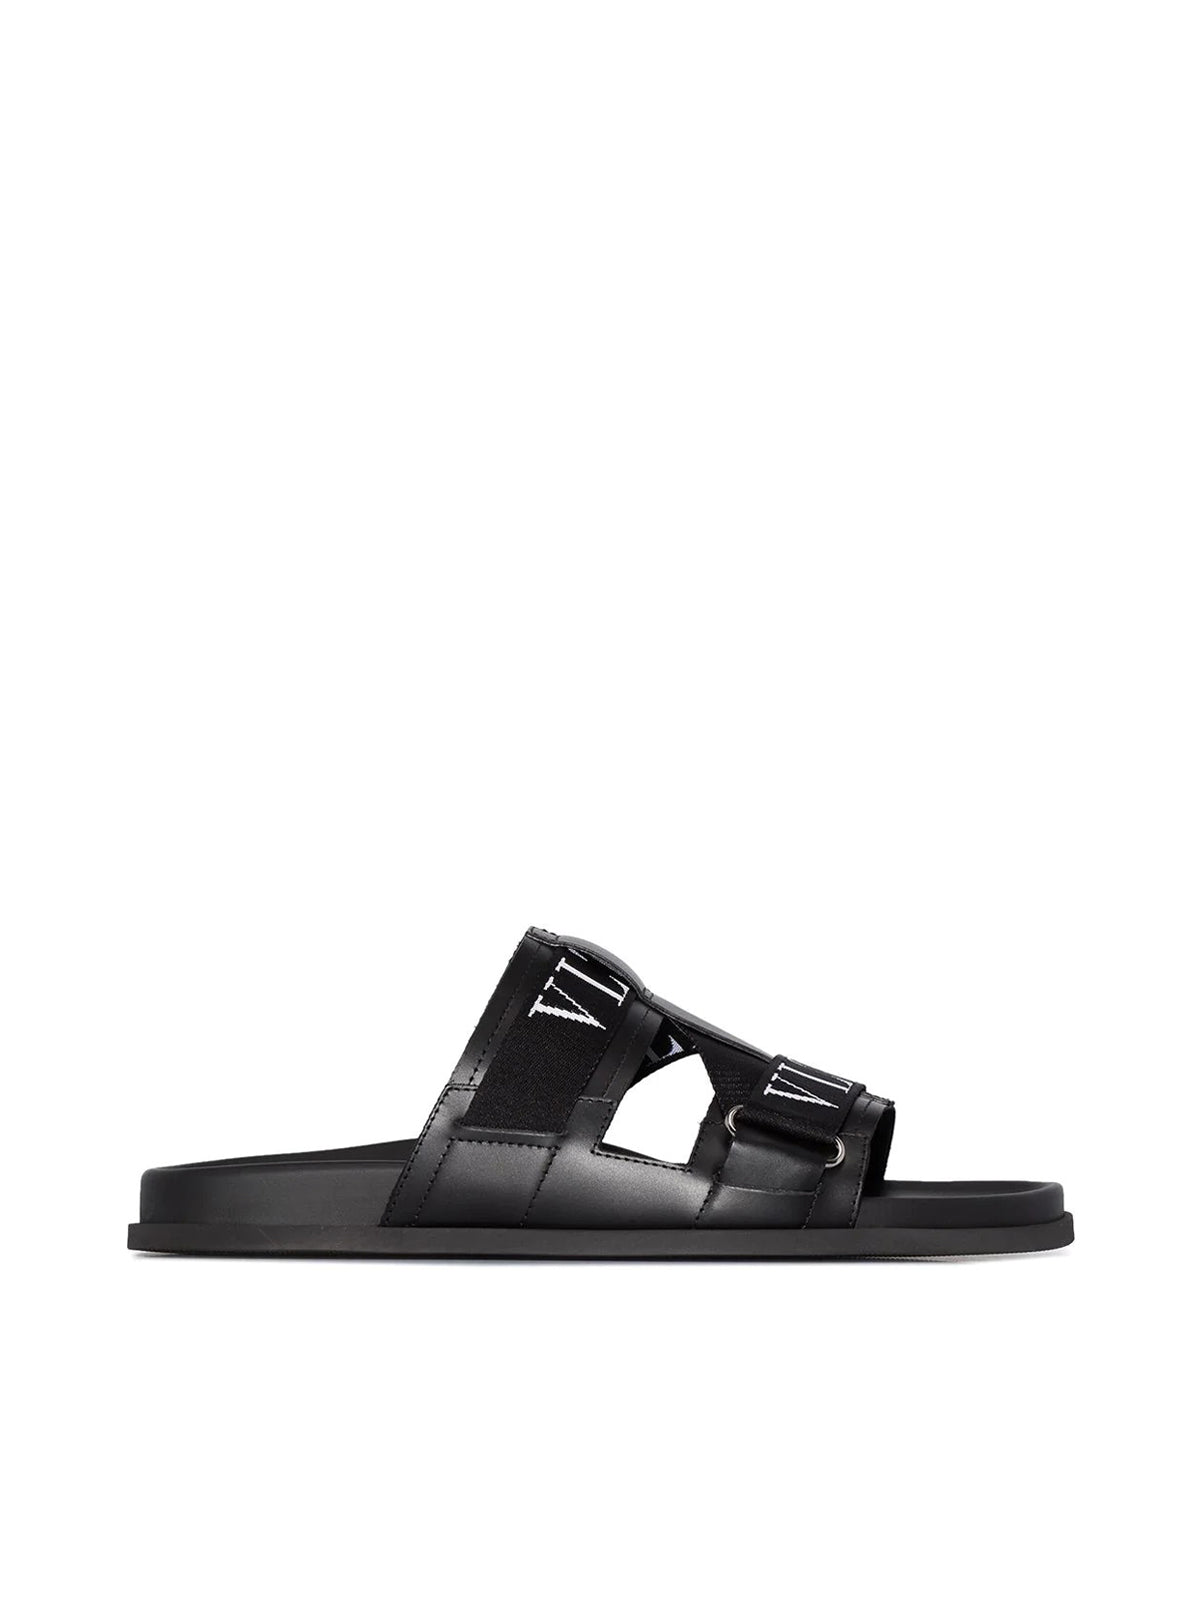 VLTN leather slides